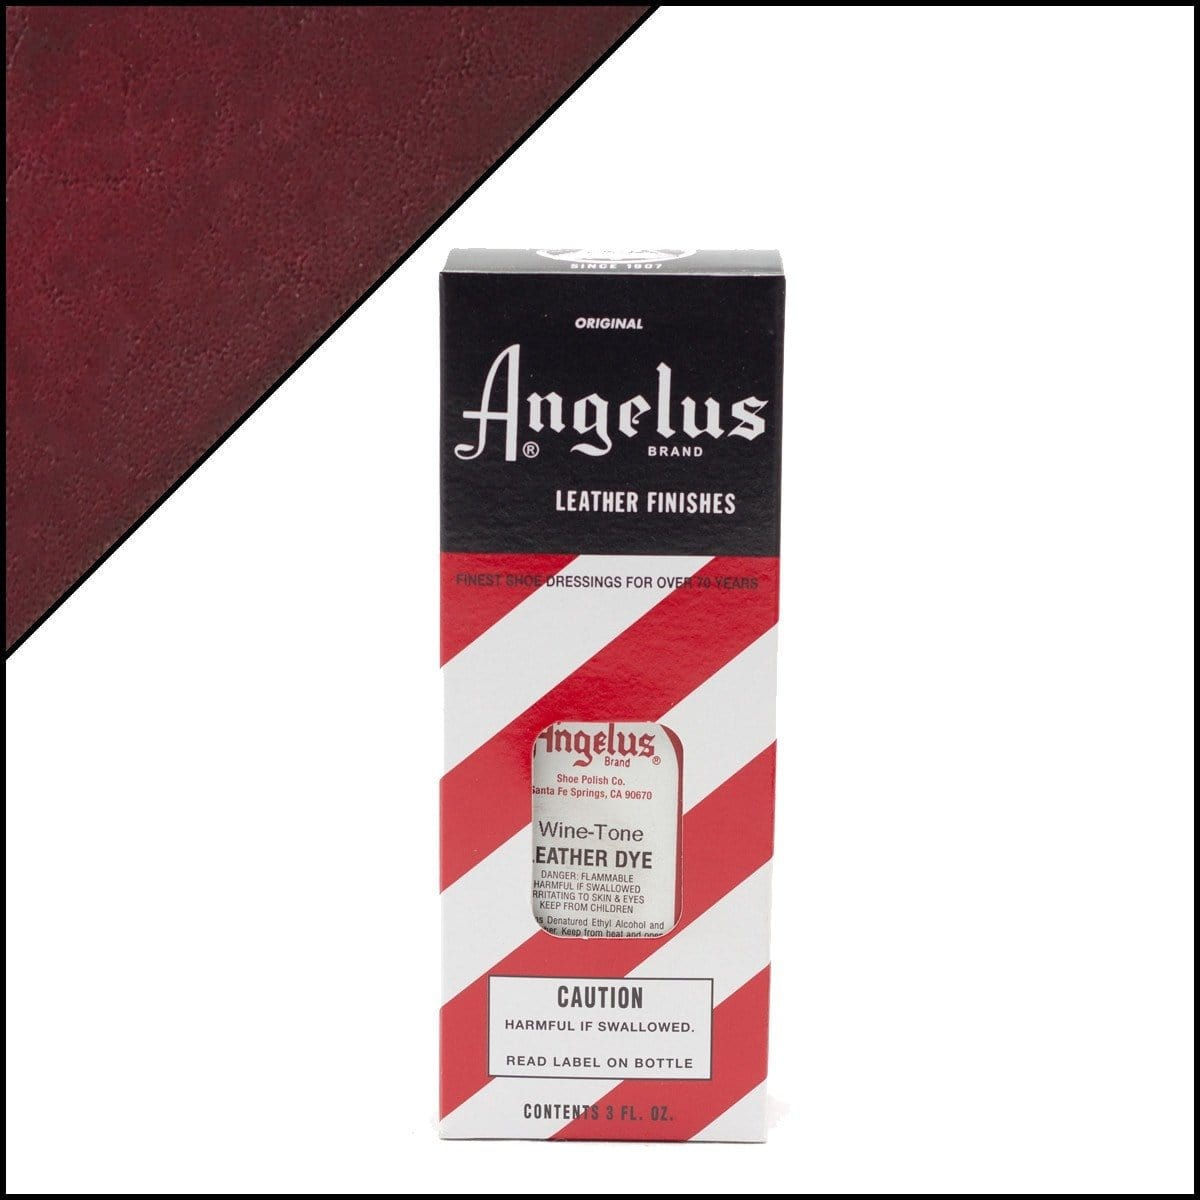 how to use angelus leather dye